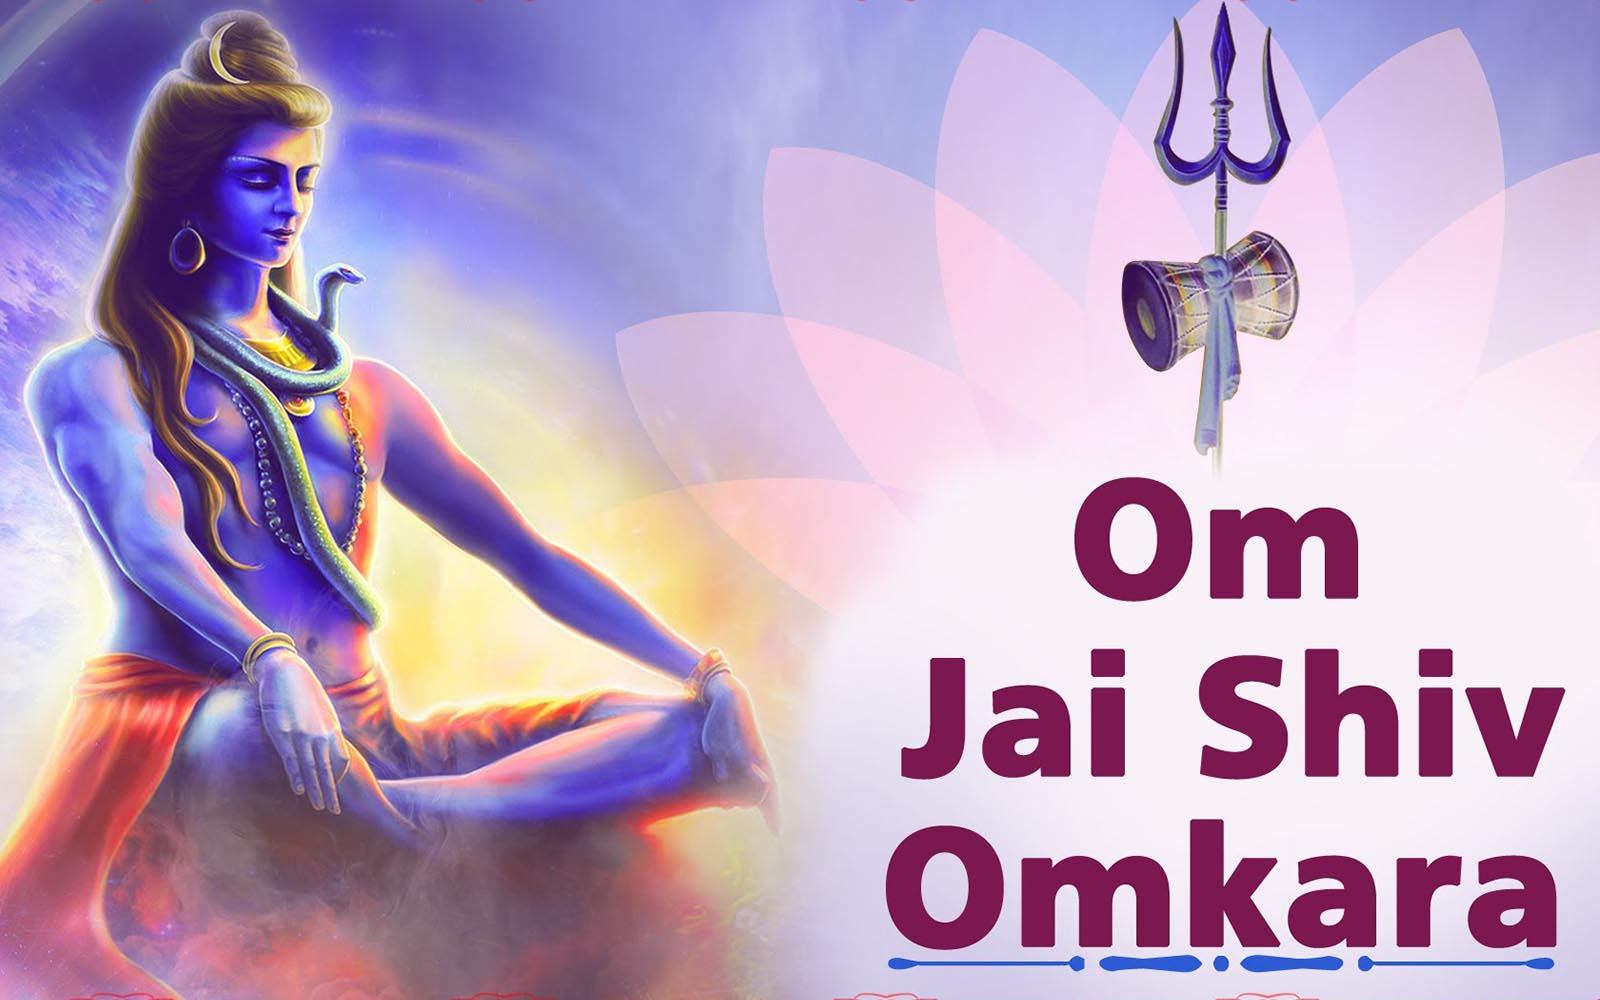 Omkara plays Om Jay Shiv.